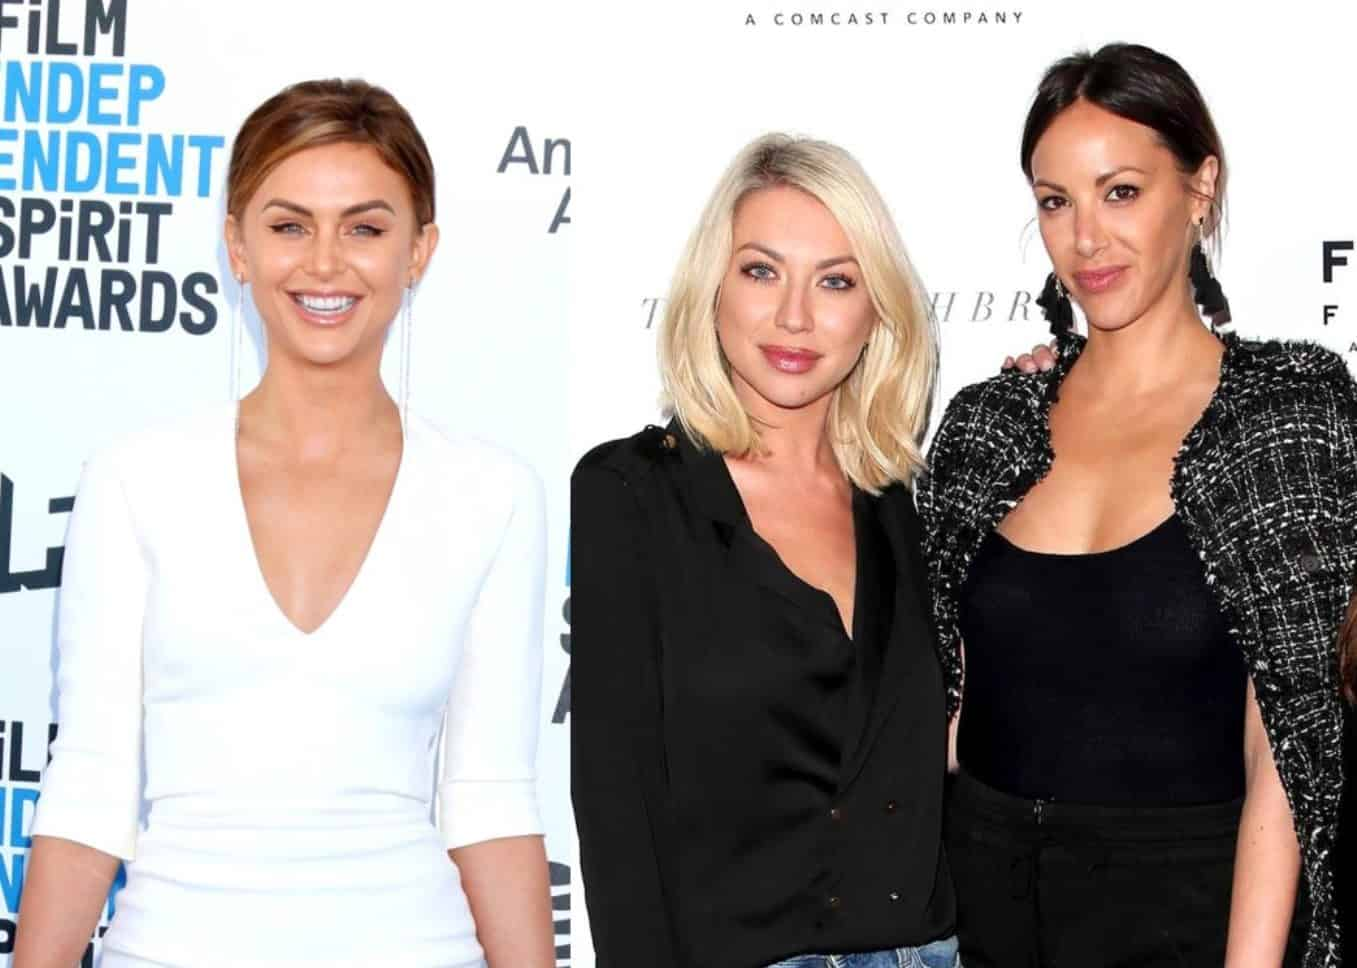 Lala Kent Speaks Out On Firings of Stassi Schroeder and Kristen Doute From Vanderpump Rules For the First Time